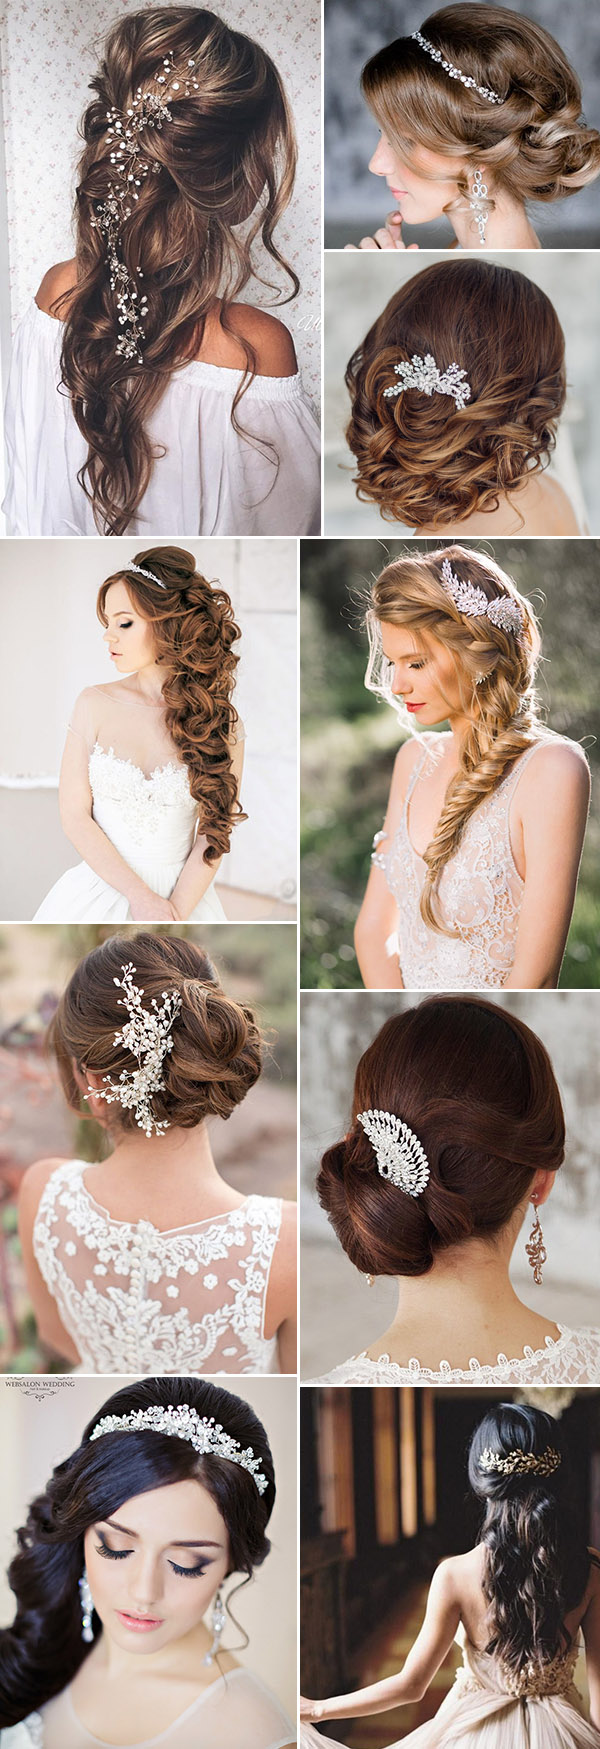 Amazing Floral hair accessories for holidays 2018 3